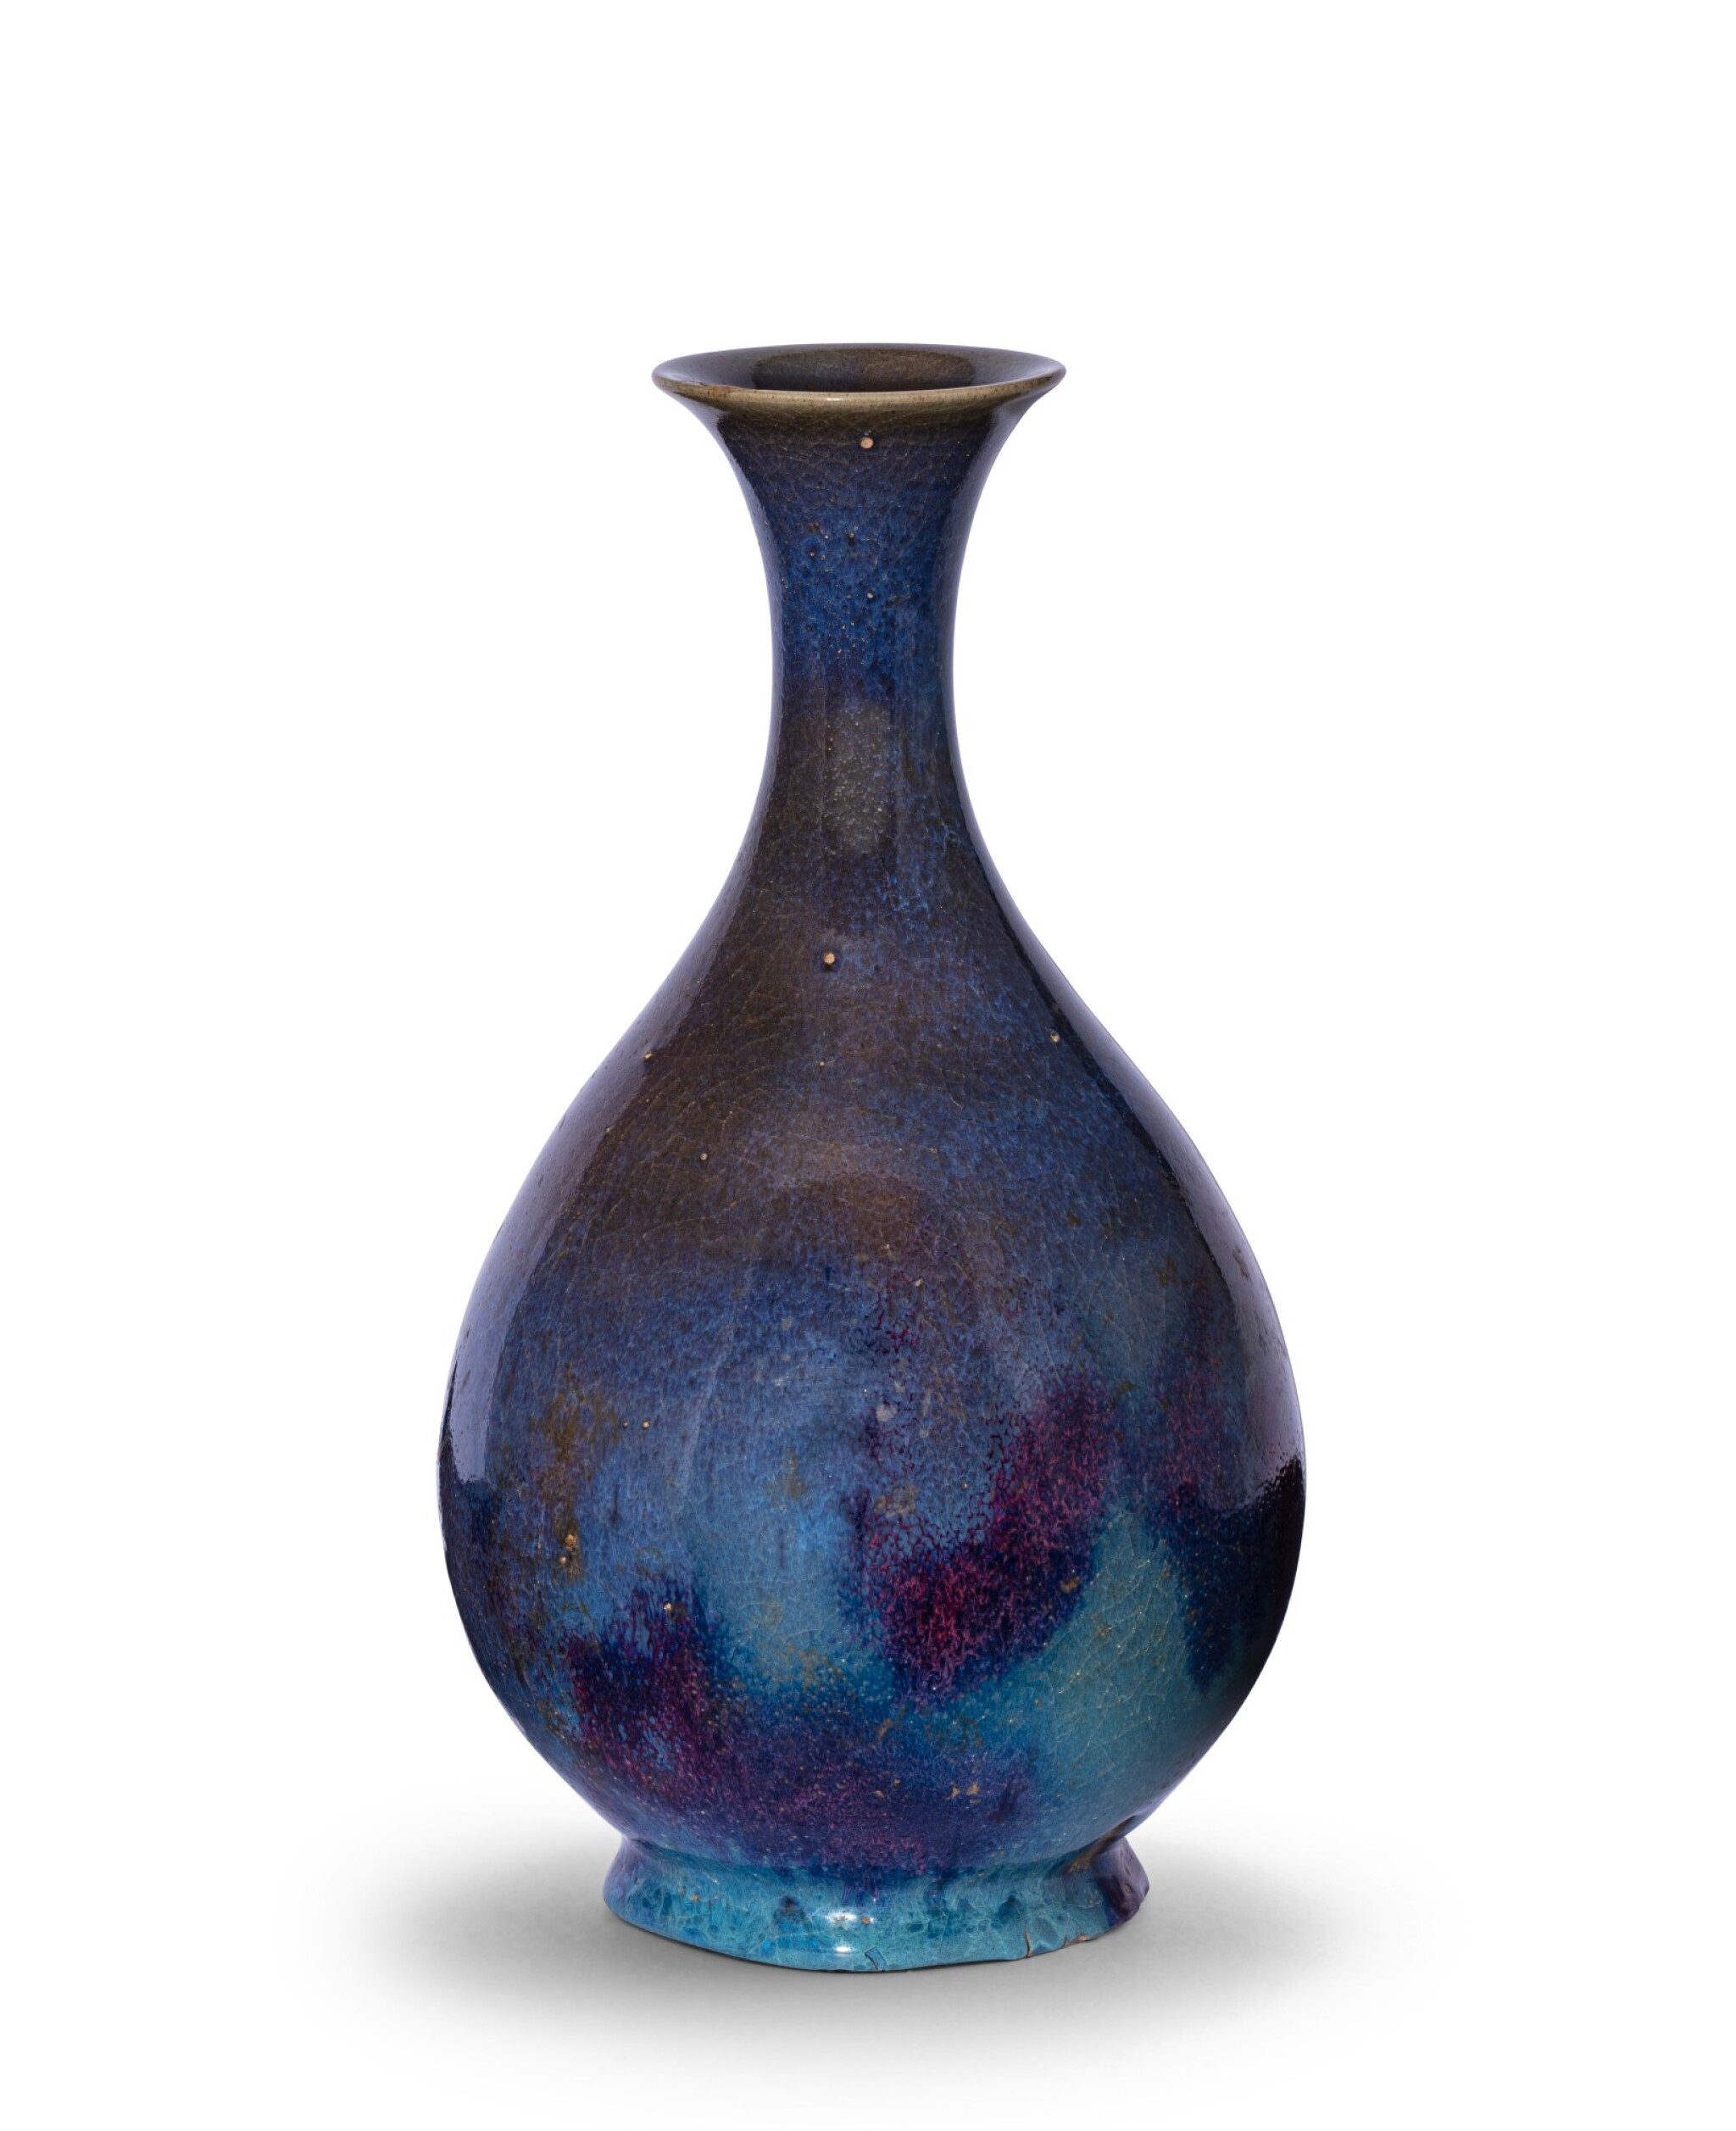 View 1 of Lot 10. Vase bouteille en grès émaillé Jun, yuhuchunping Dynastie Yuan | 元 鈞窰天藍釉紫斑玉壺春瓶 | A purple-splashed 'Jun' bottle vase, yuhuchunping, Yuan Dynasty.